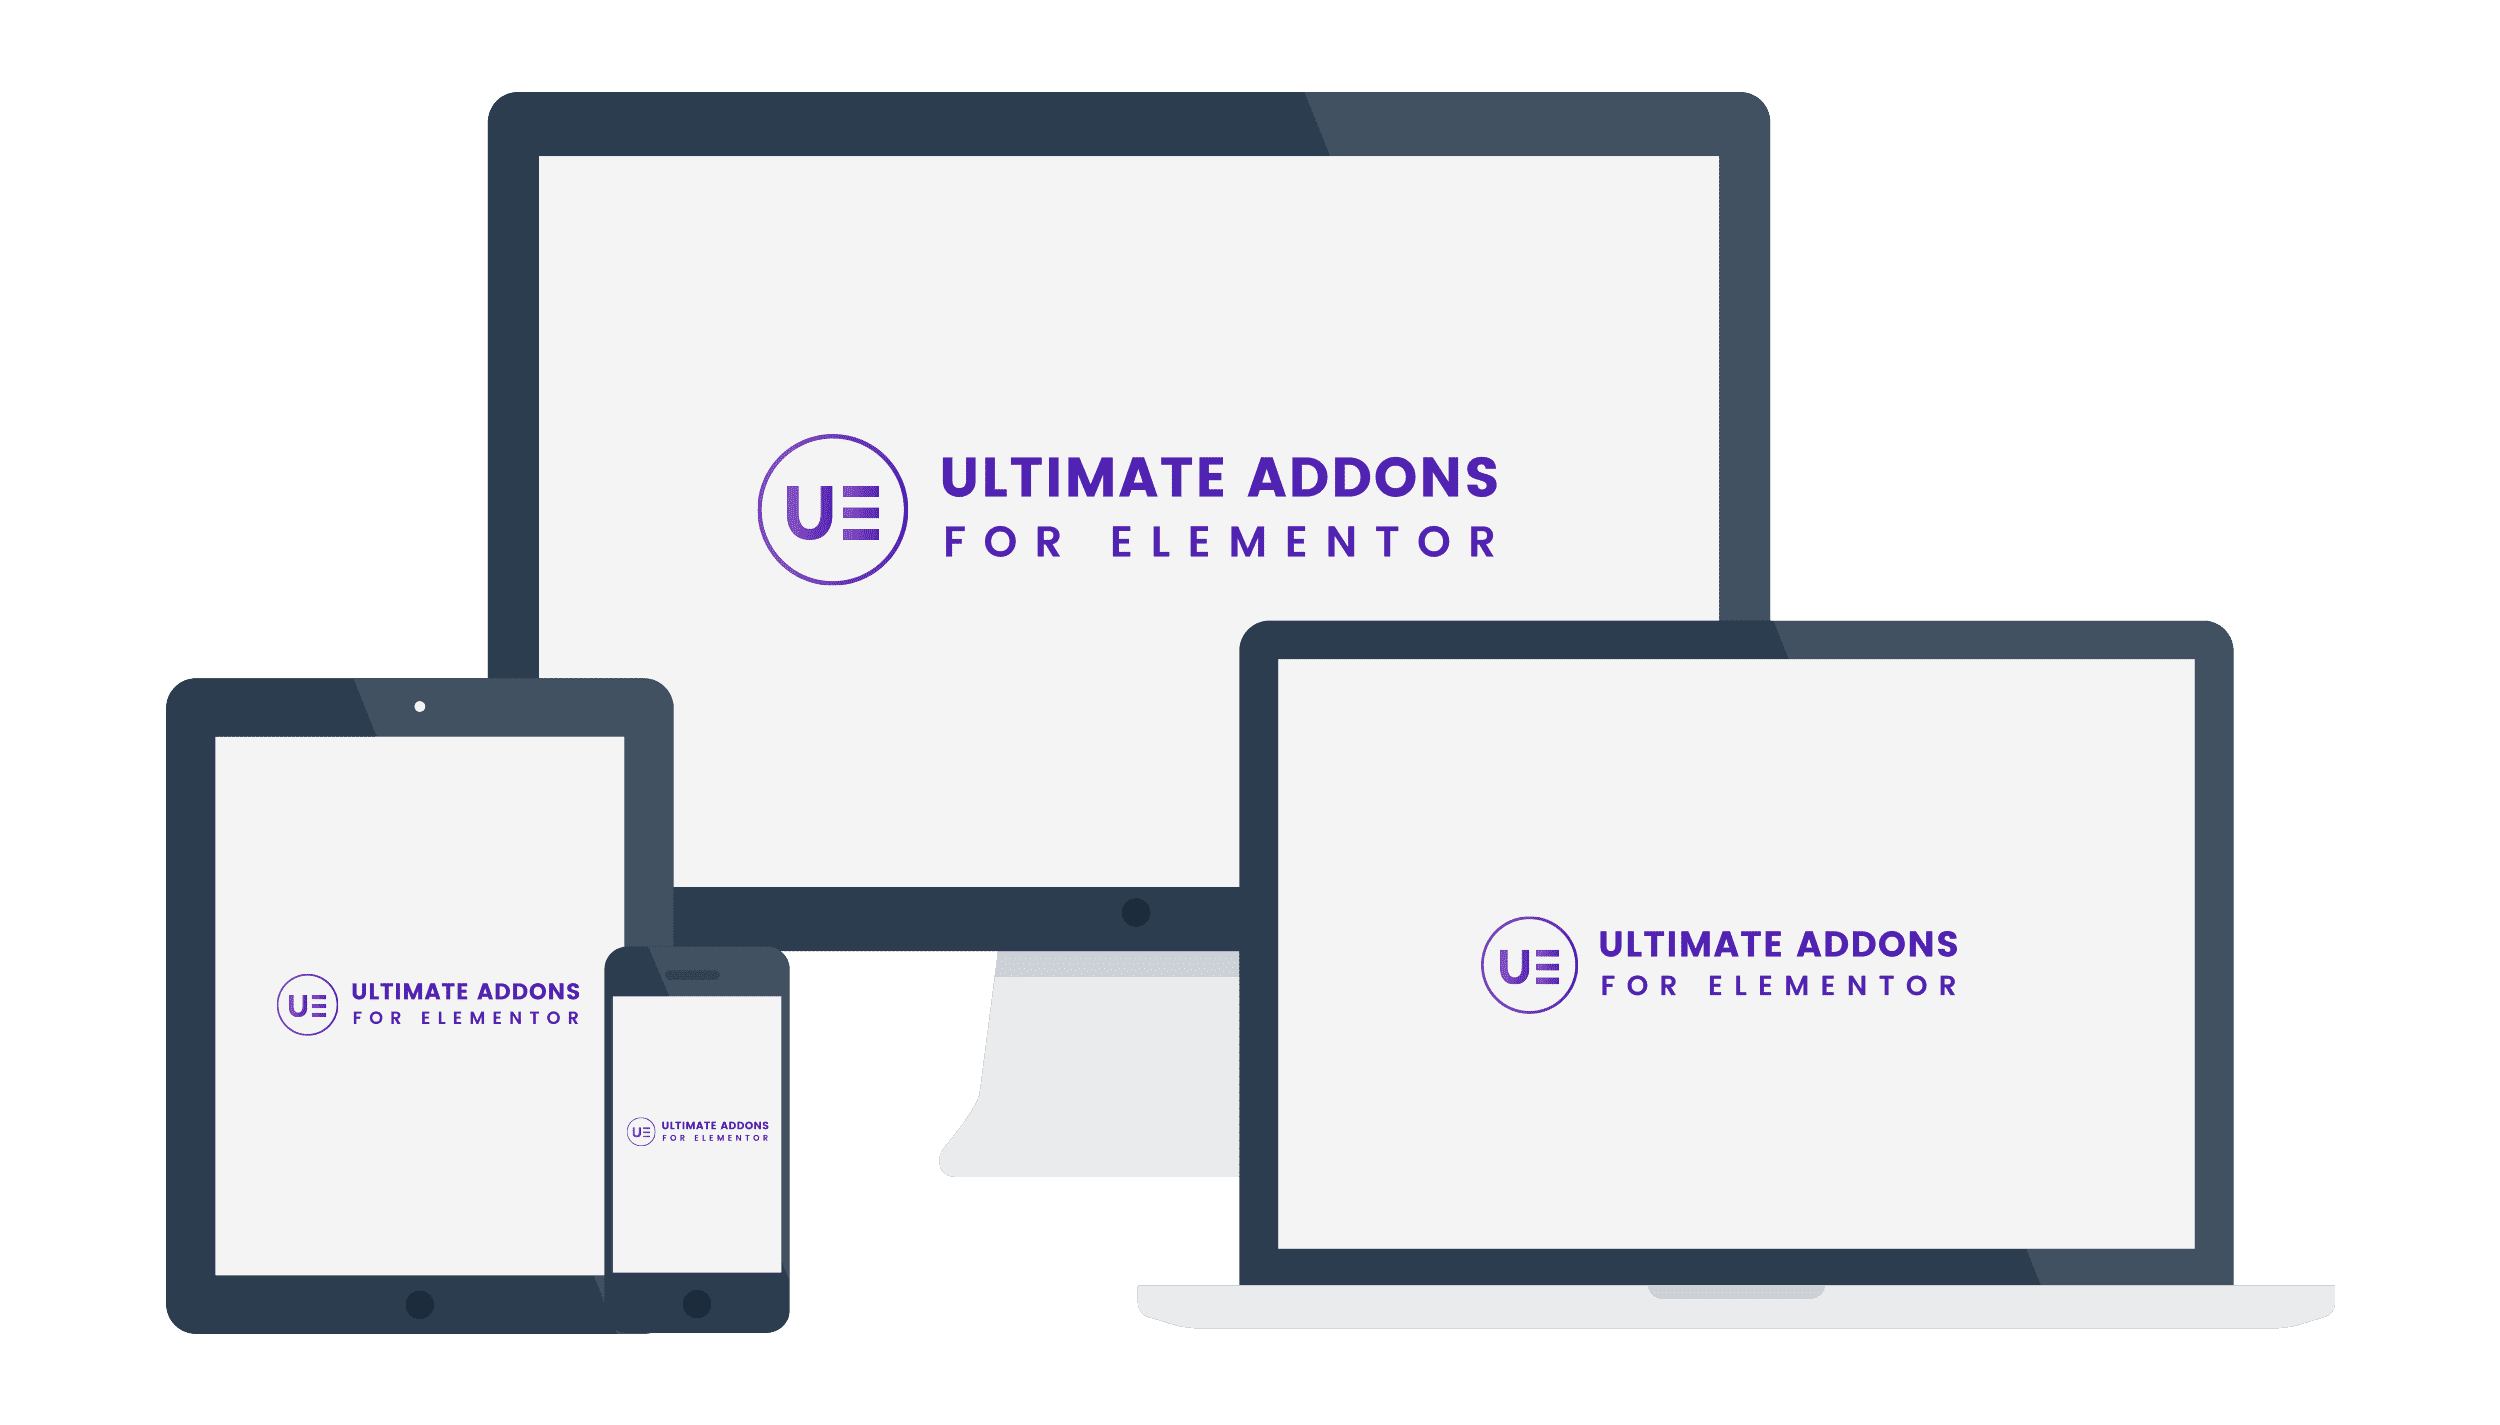 ultimate-addons-for-elementor-1